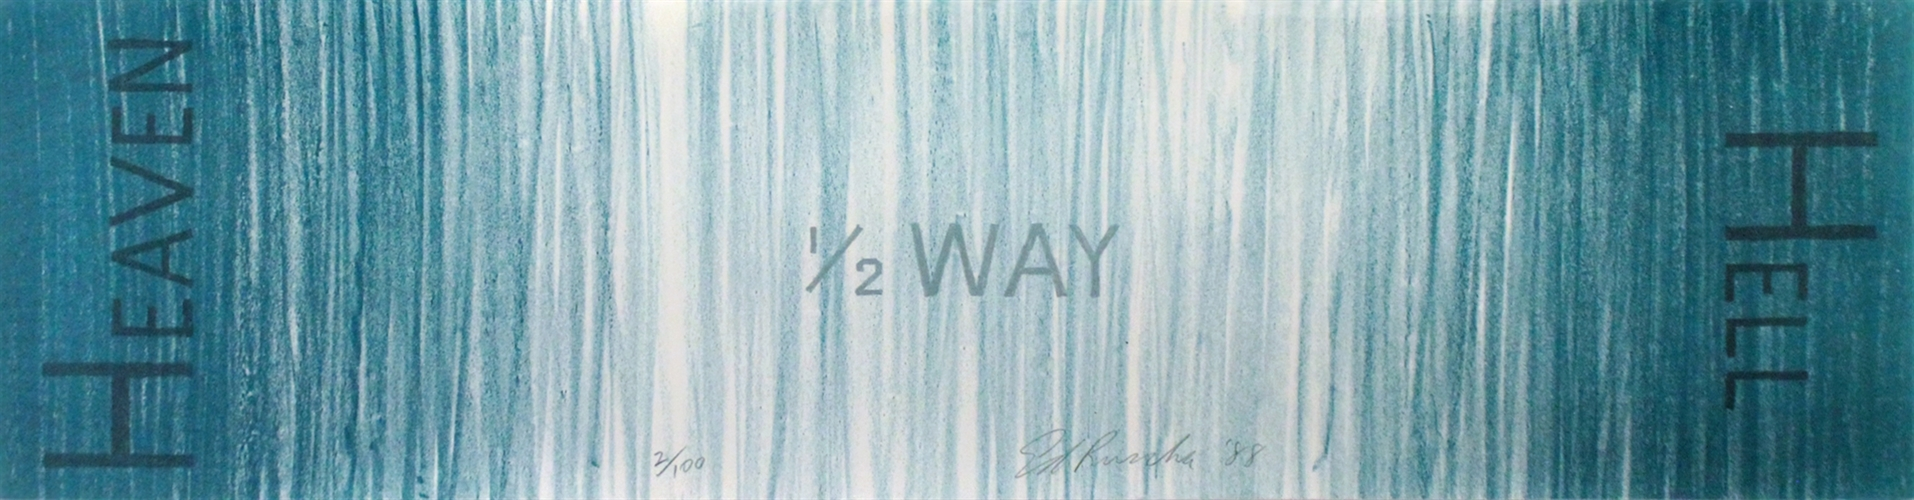 Ed Ruscha, Hell 1/2 Way Heaven, 1988, Lithograph in colors on Rives wove paper Overall Size: 7.8 x 29.5 in. Signed; Dated and numbered lower center in pencil. 63/100 Collection, Robert & Karen Avrech, Los Angeles.